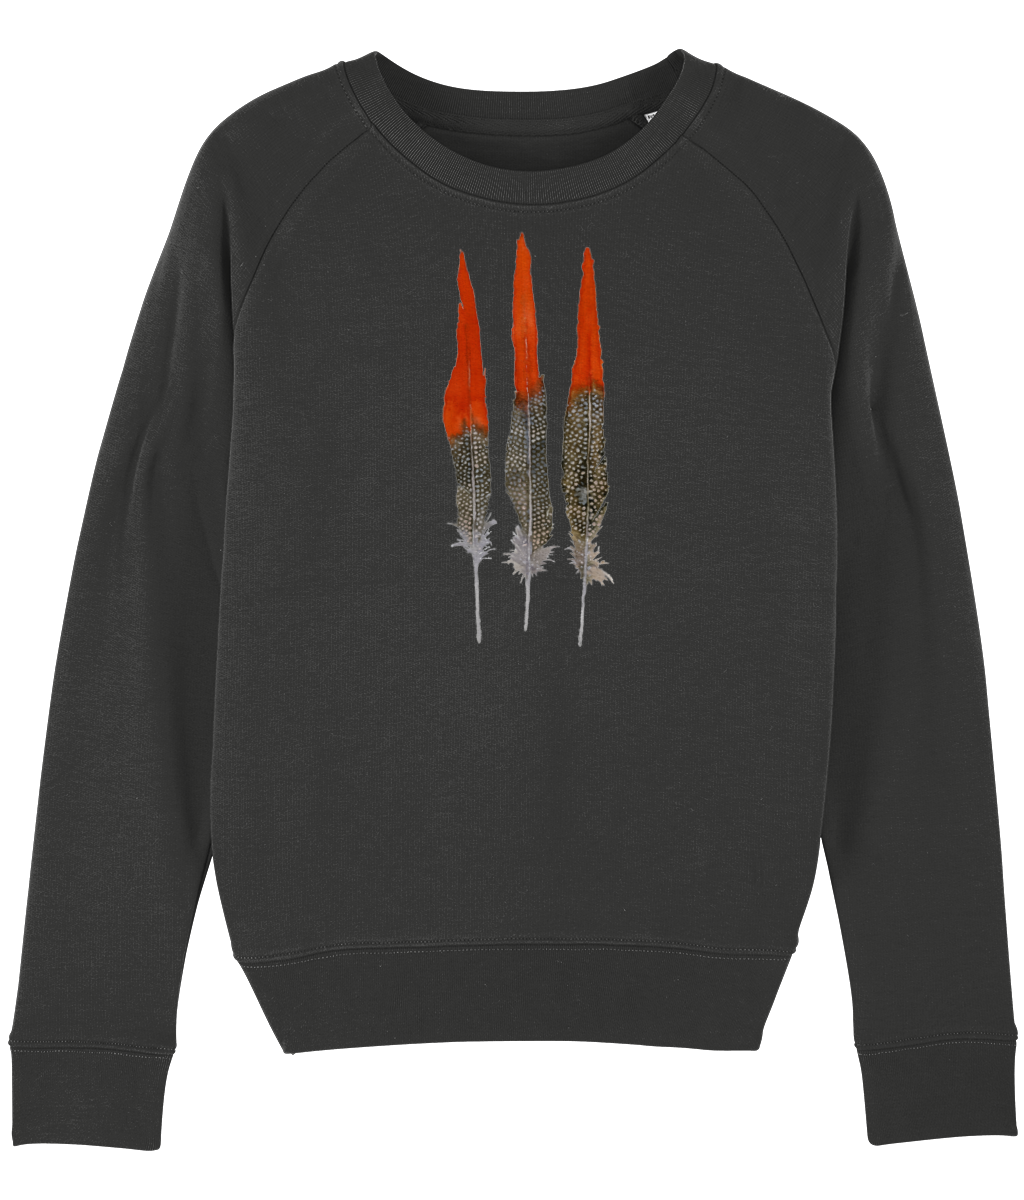 Red feathers sweatshirt